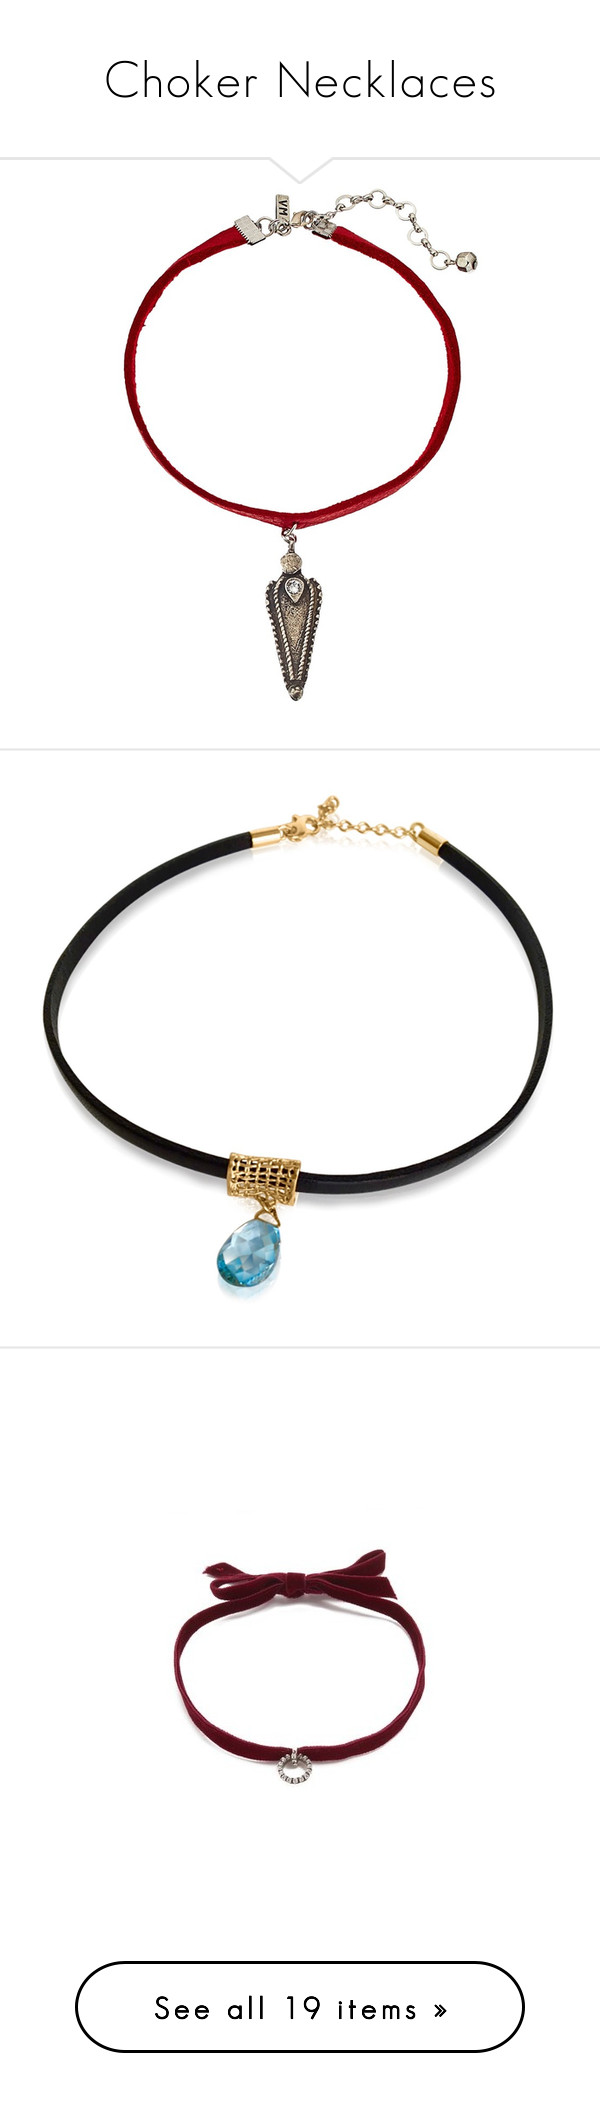 """""""Choker Necklaces"""" by karai ❤ liked on Polyvore featuring jewelry, necklaces, silver pendant necklace, chain choker necklace, red pendant necklace, leather necklace, silver necklace pendant, accessories, chain choker and chain necklaces"""